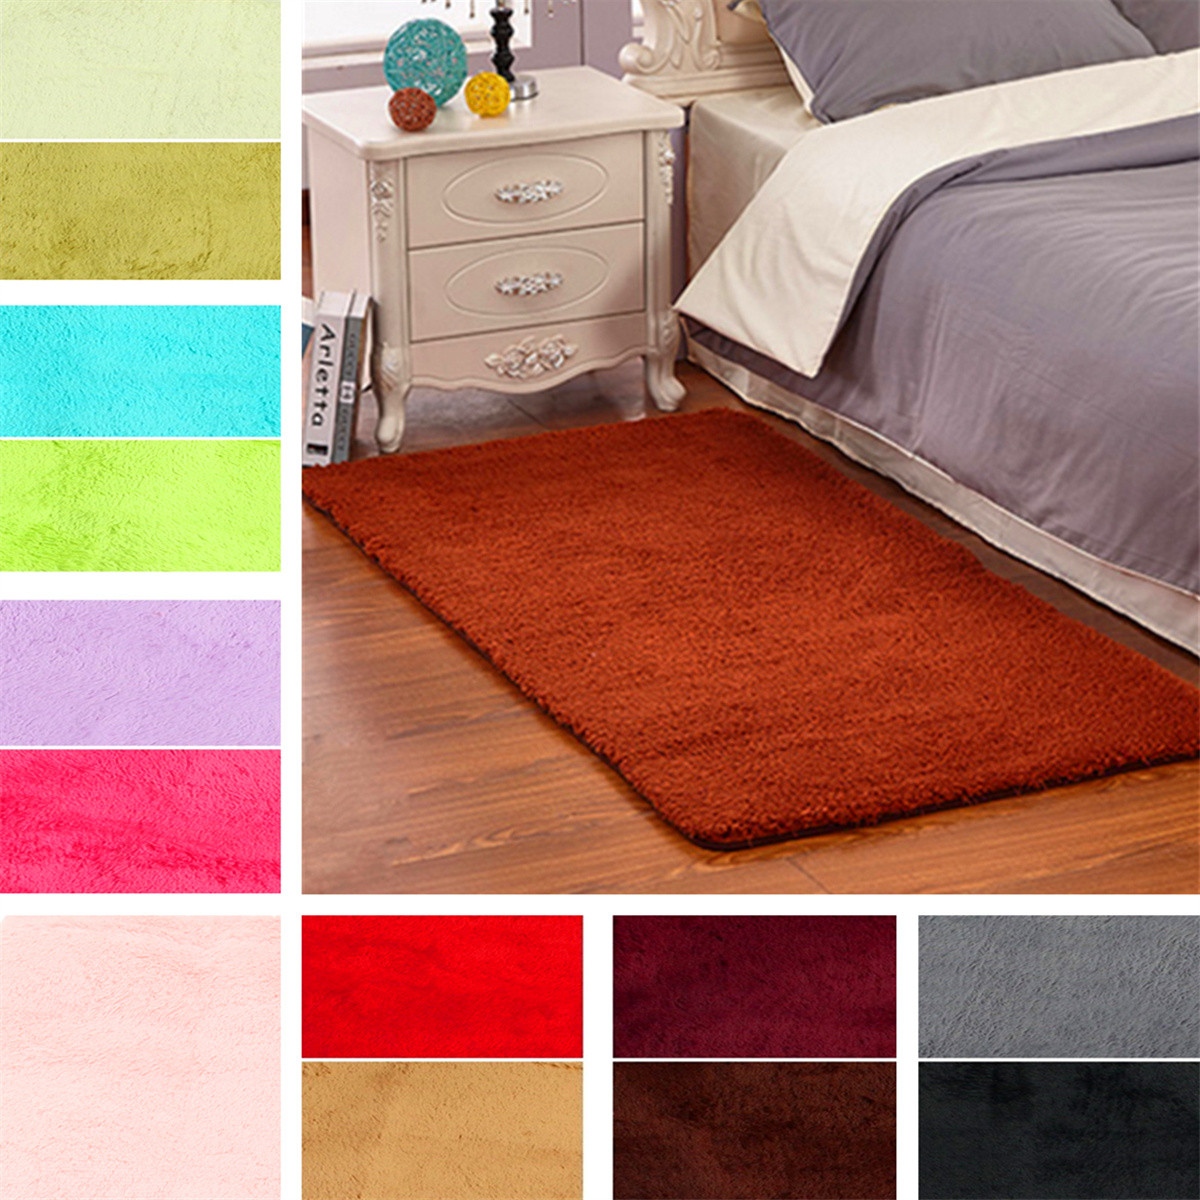 super soft indoor modern shag area smooth rugs fluffy rugs antiskid shaggy area rug